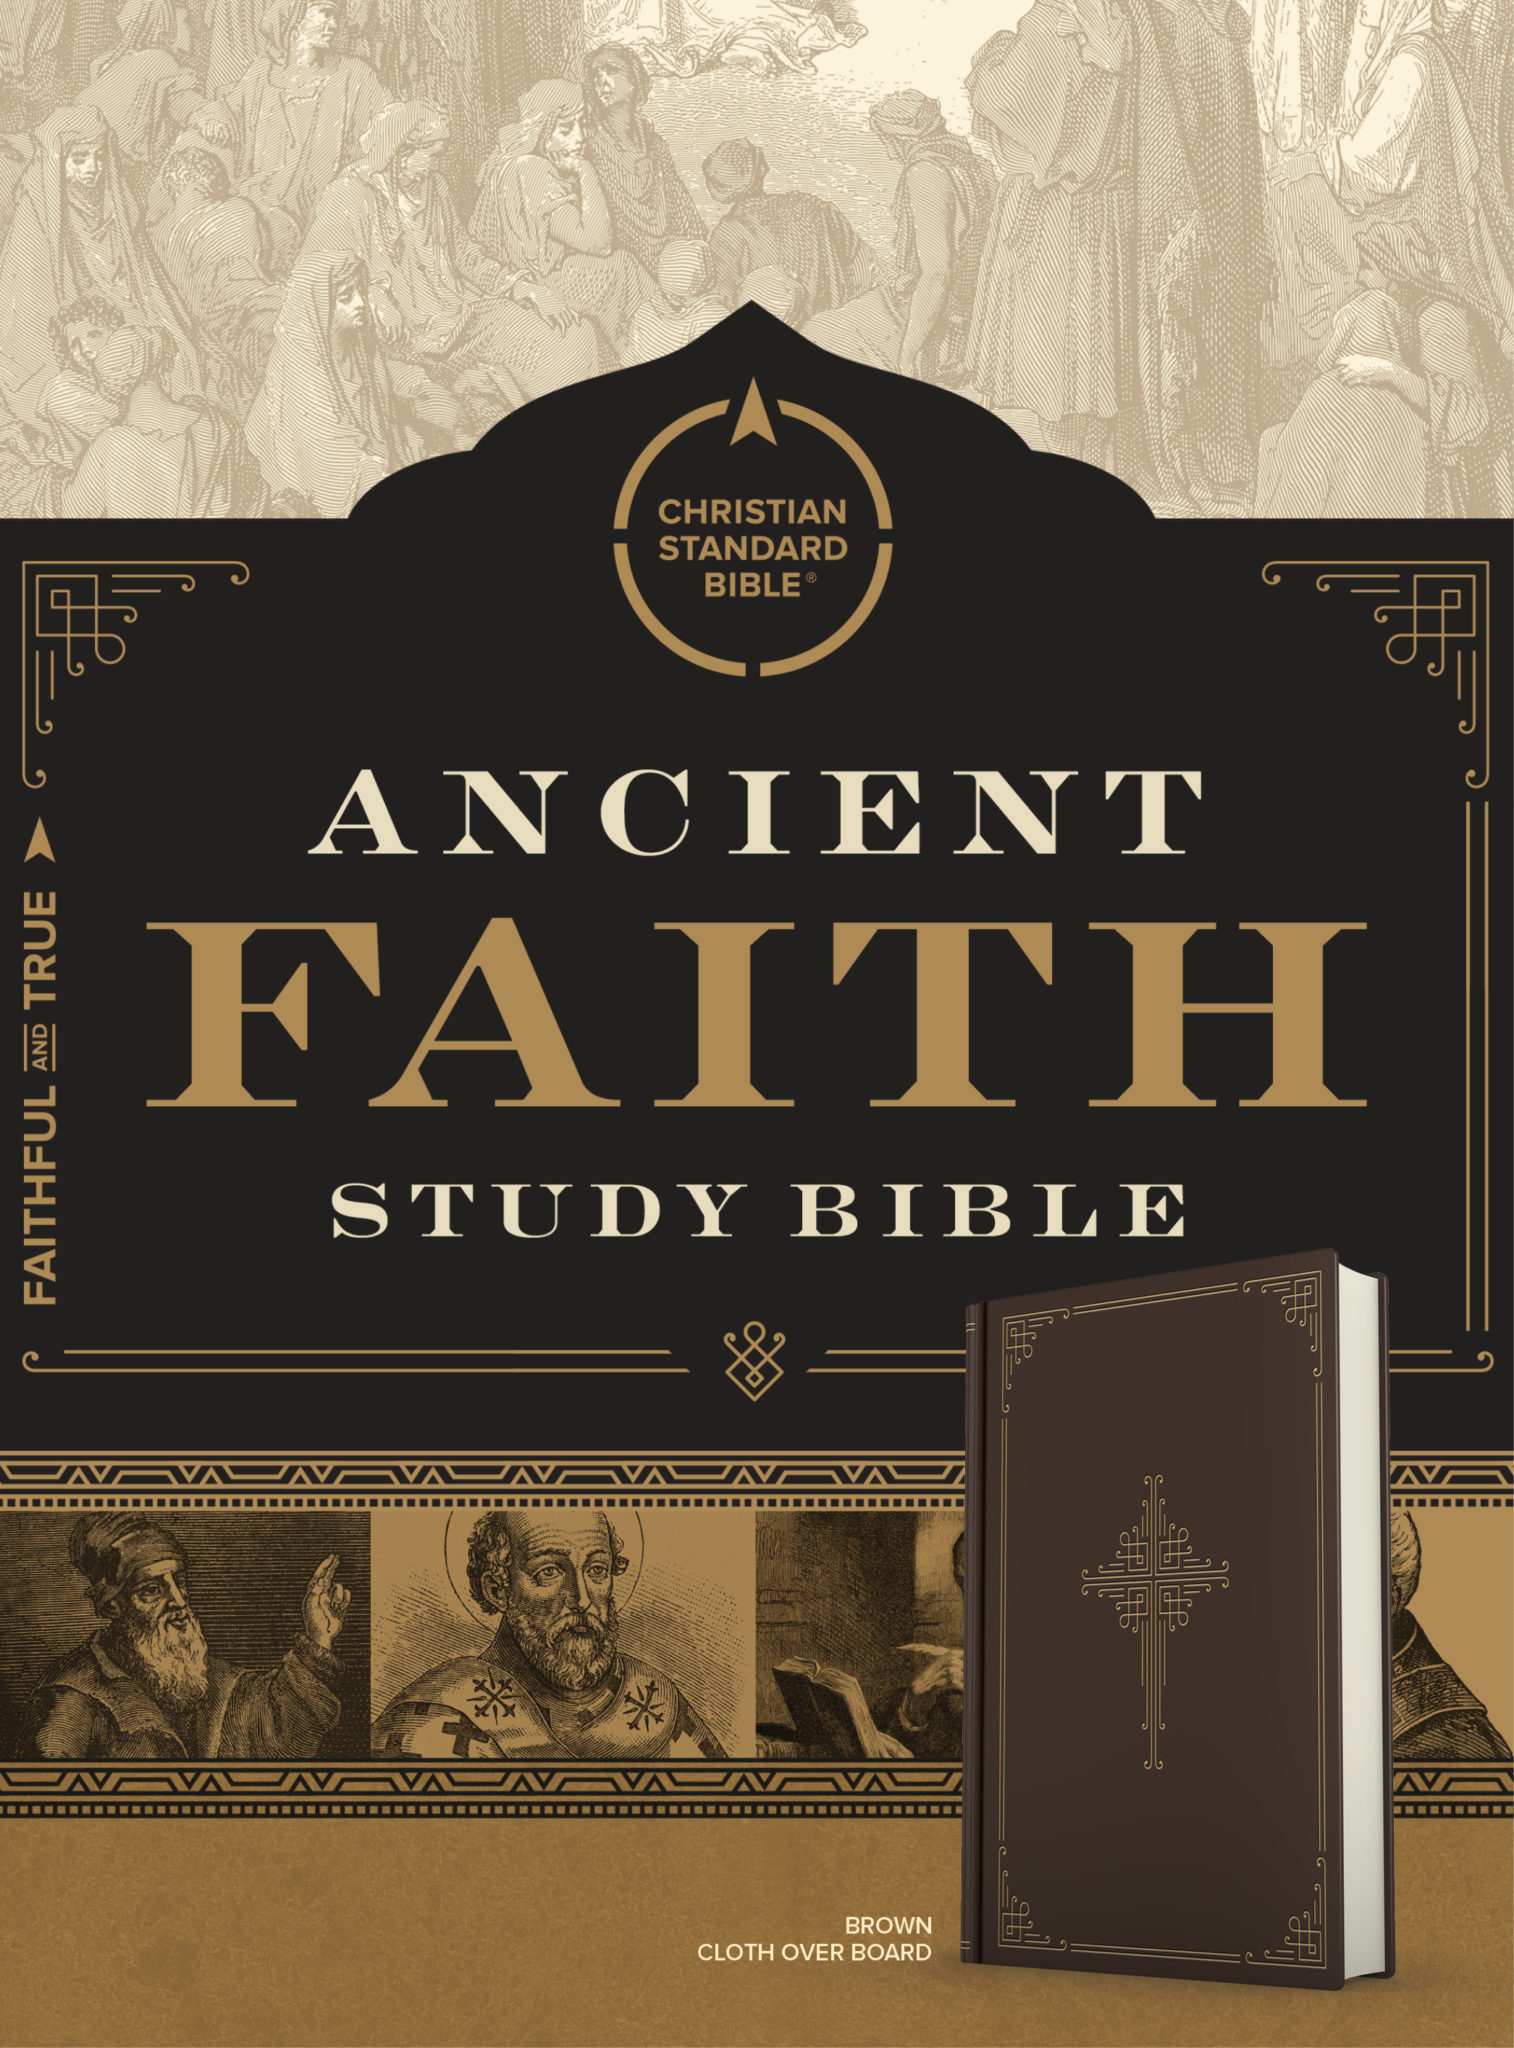 B&H Publishing wins pair of Christian Book Awards, including best Bible